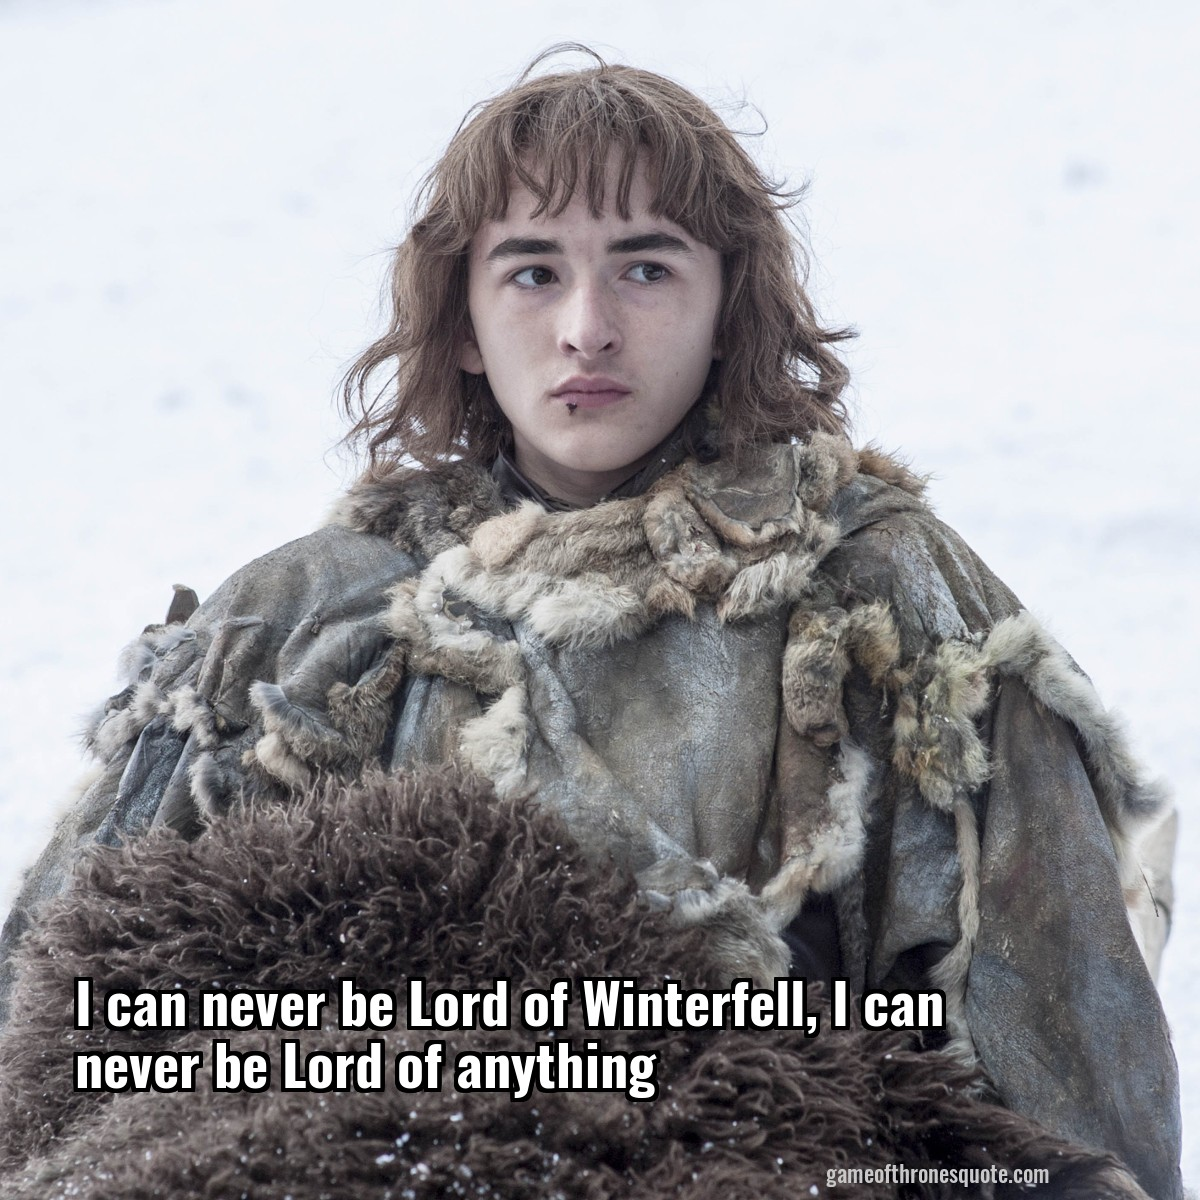 I can never be Lord of Winterfell, I can never be Lord of anything